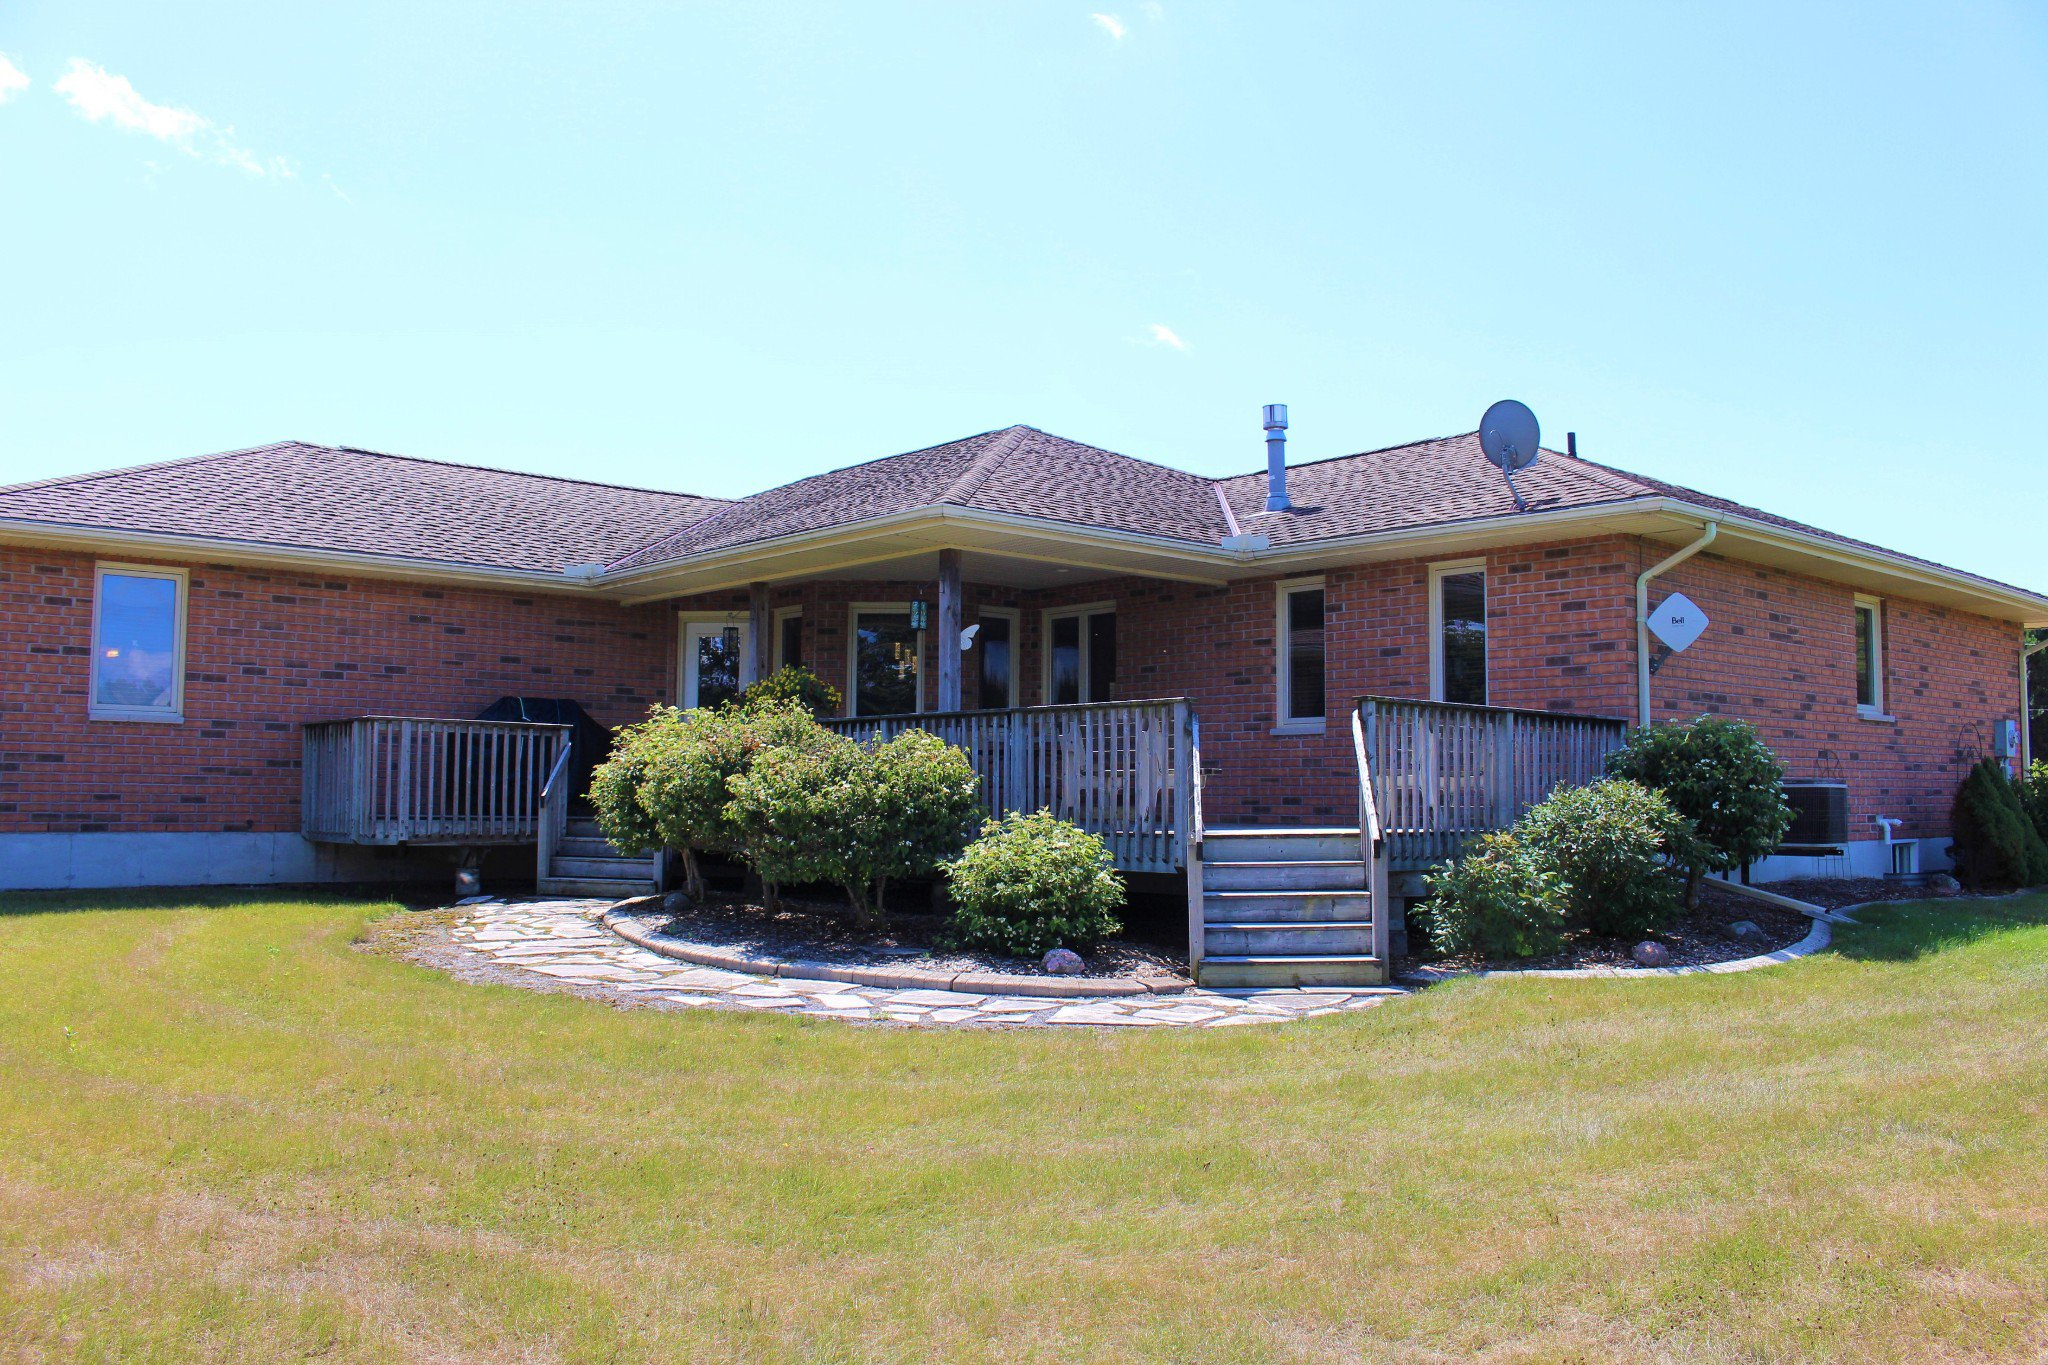 Photo 44: Photos: 159 Nawautin Drive in Grafton: Residential Detached for sale : MLS®# 40012652